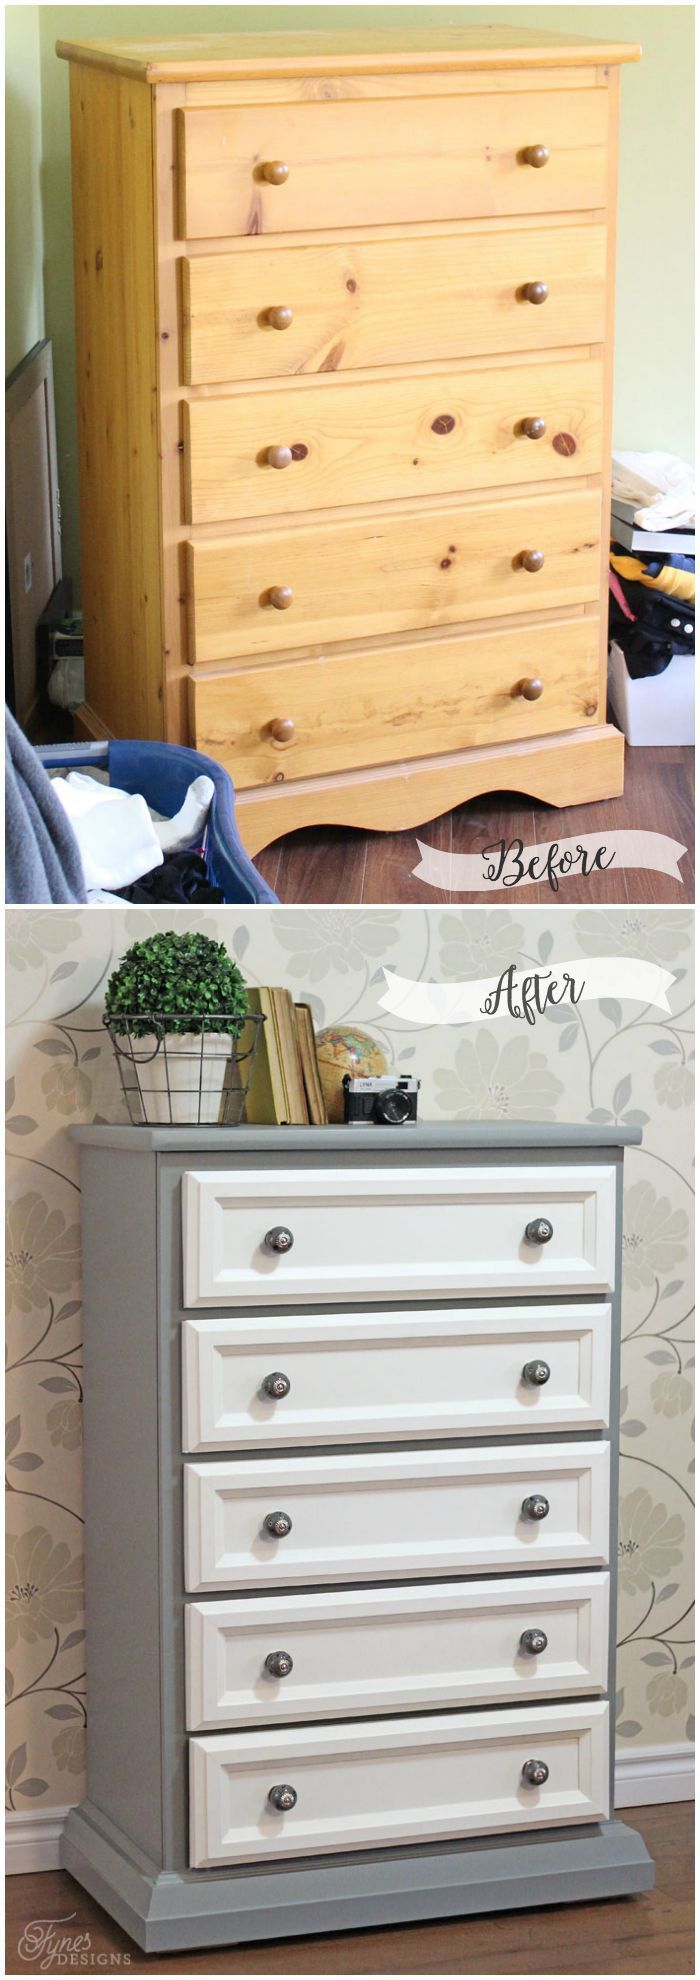 Tall Dresser Makeover Tutorial With Trim And Paint Dresser